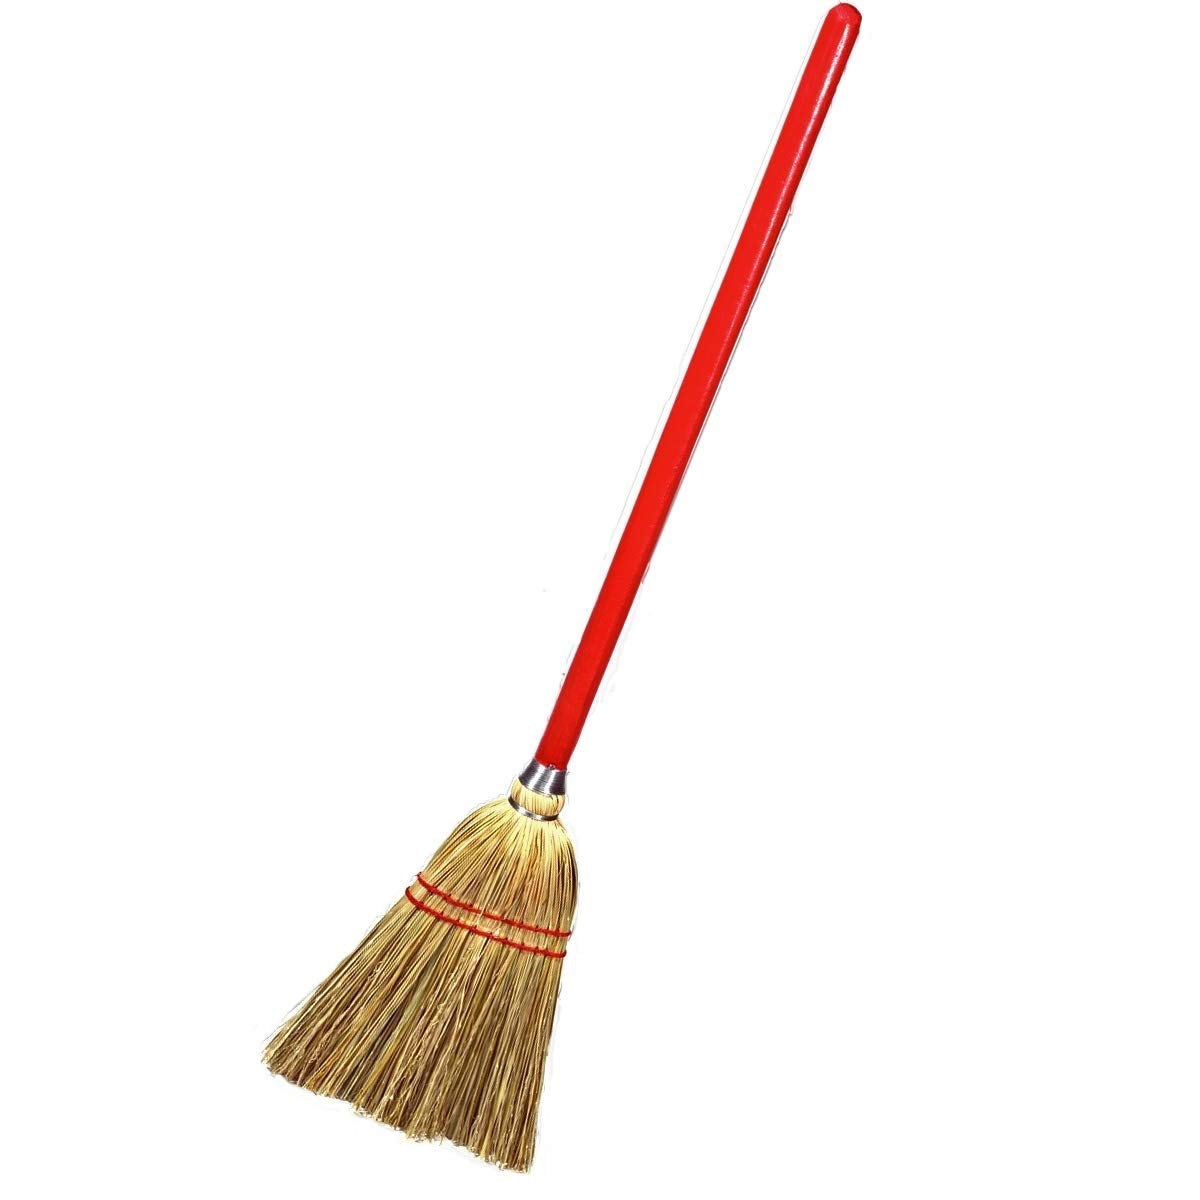 """Rocky Mountain Goods Small Broom for Kids and Toddlers - Solid Wood Handle with 100% Natural Broom Corn bristles - Ideal Kids Size 34"""" - Heavy Duty Durability - Toy Broom (1)"""